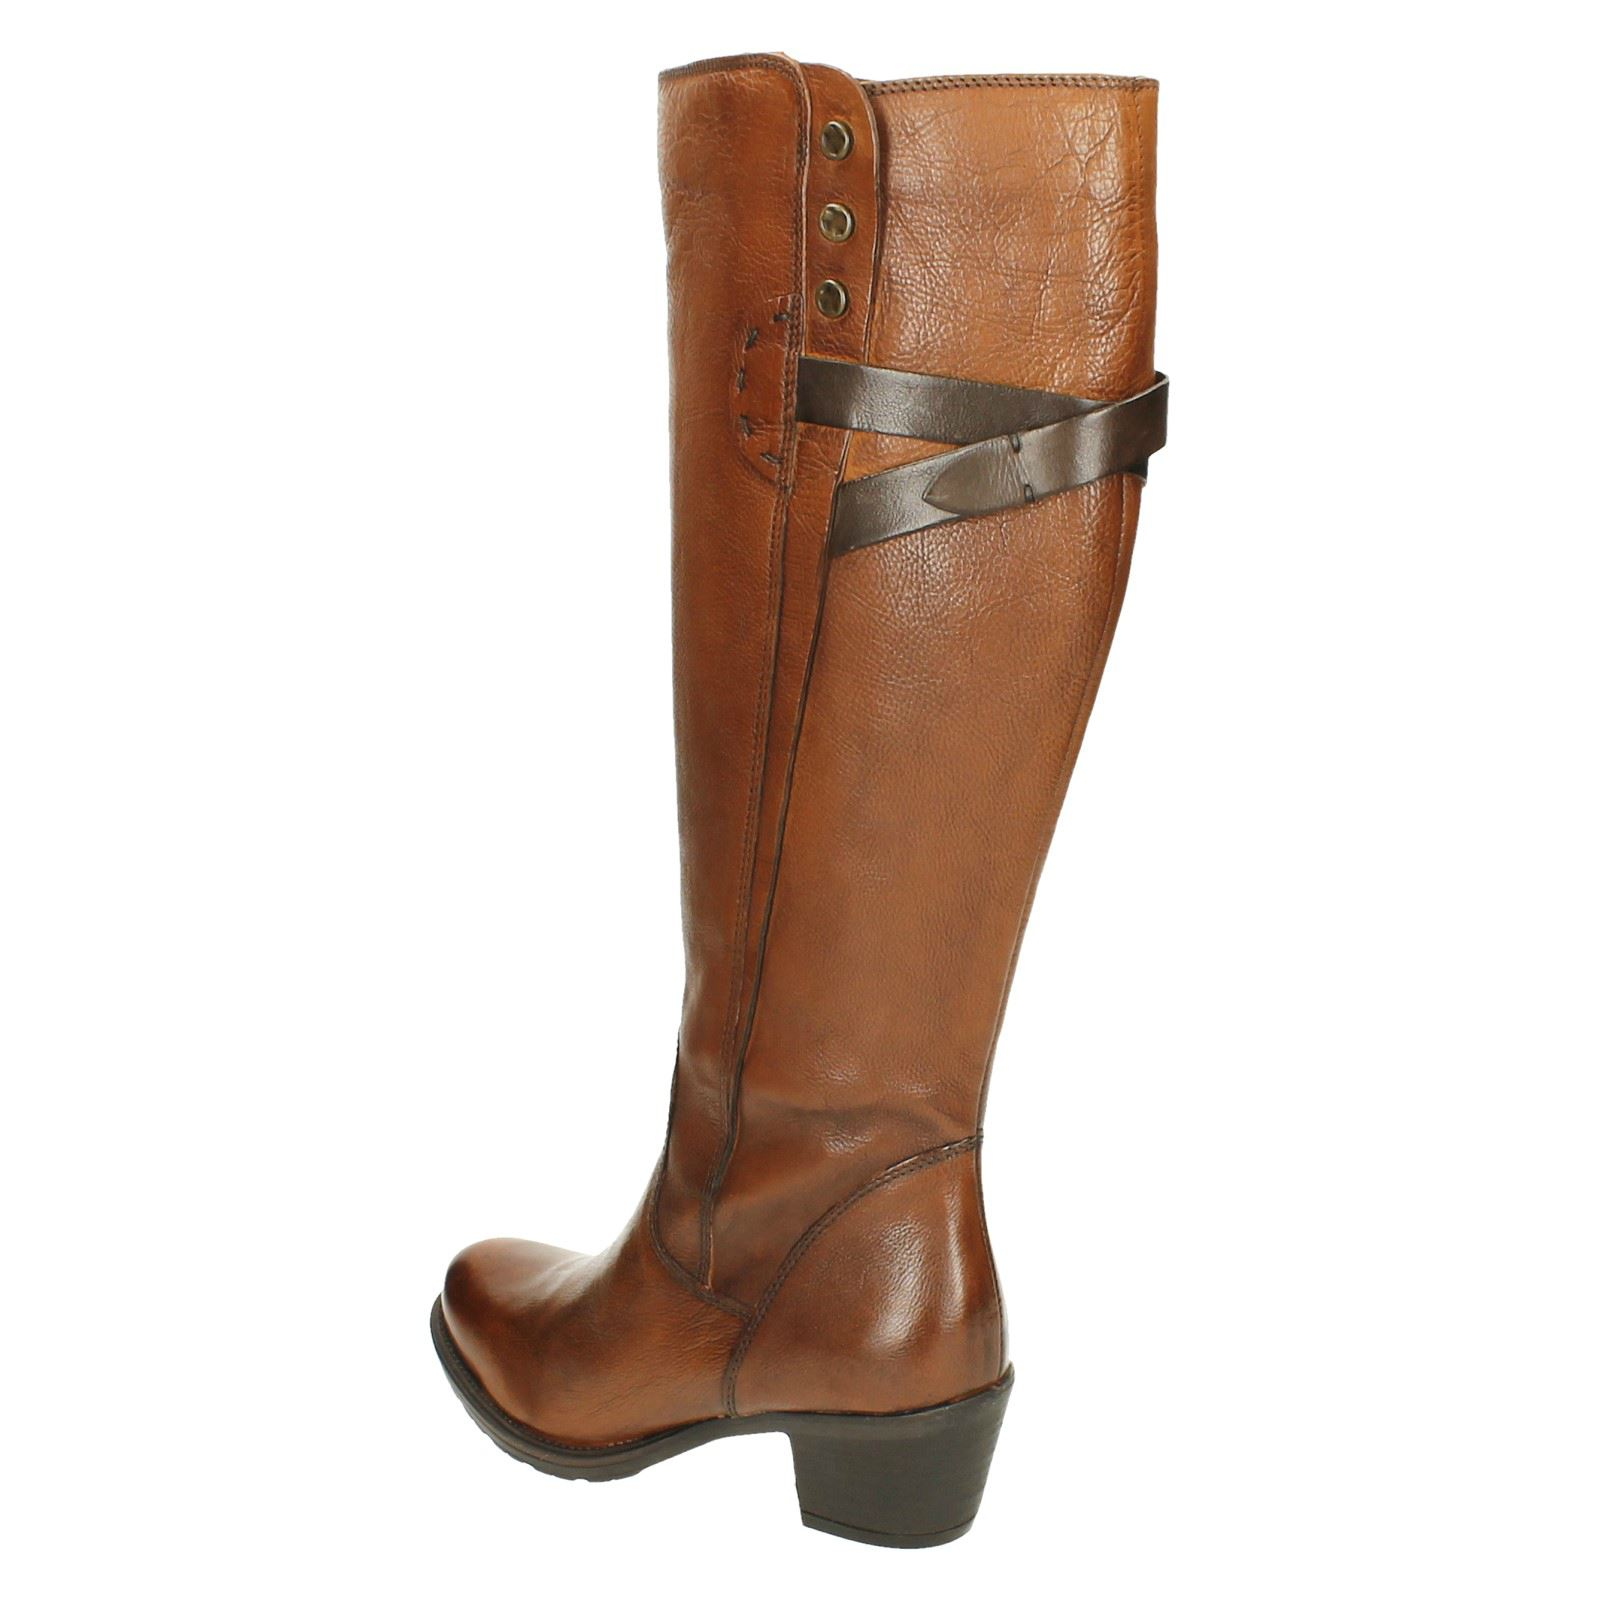 Boots Stellar Maymie Style Clarks Riding Ladies Cognac brown Xzpqap